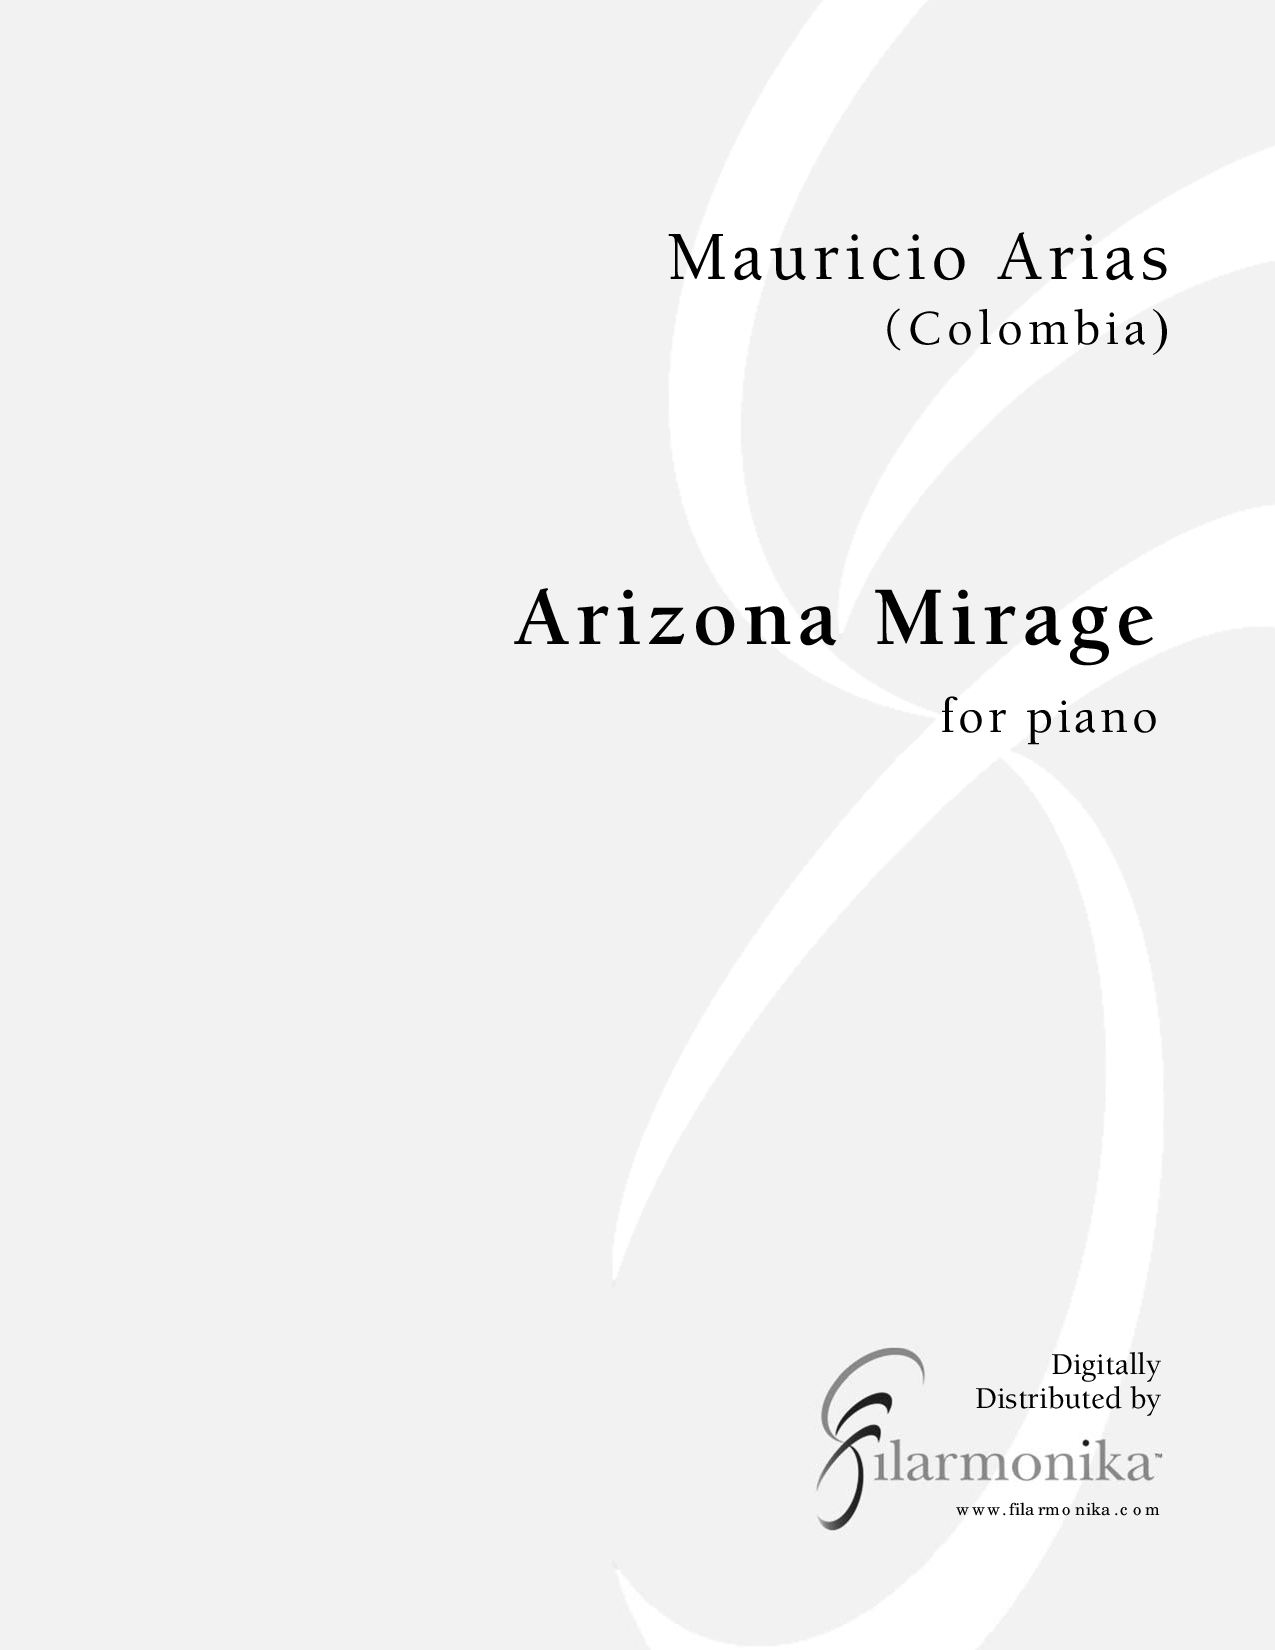 Arizona Mirage, for piano